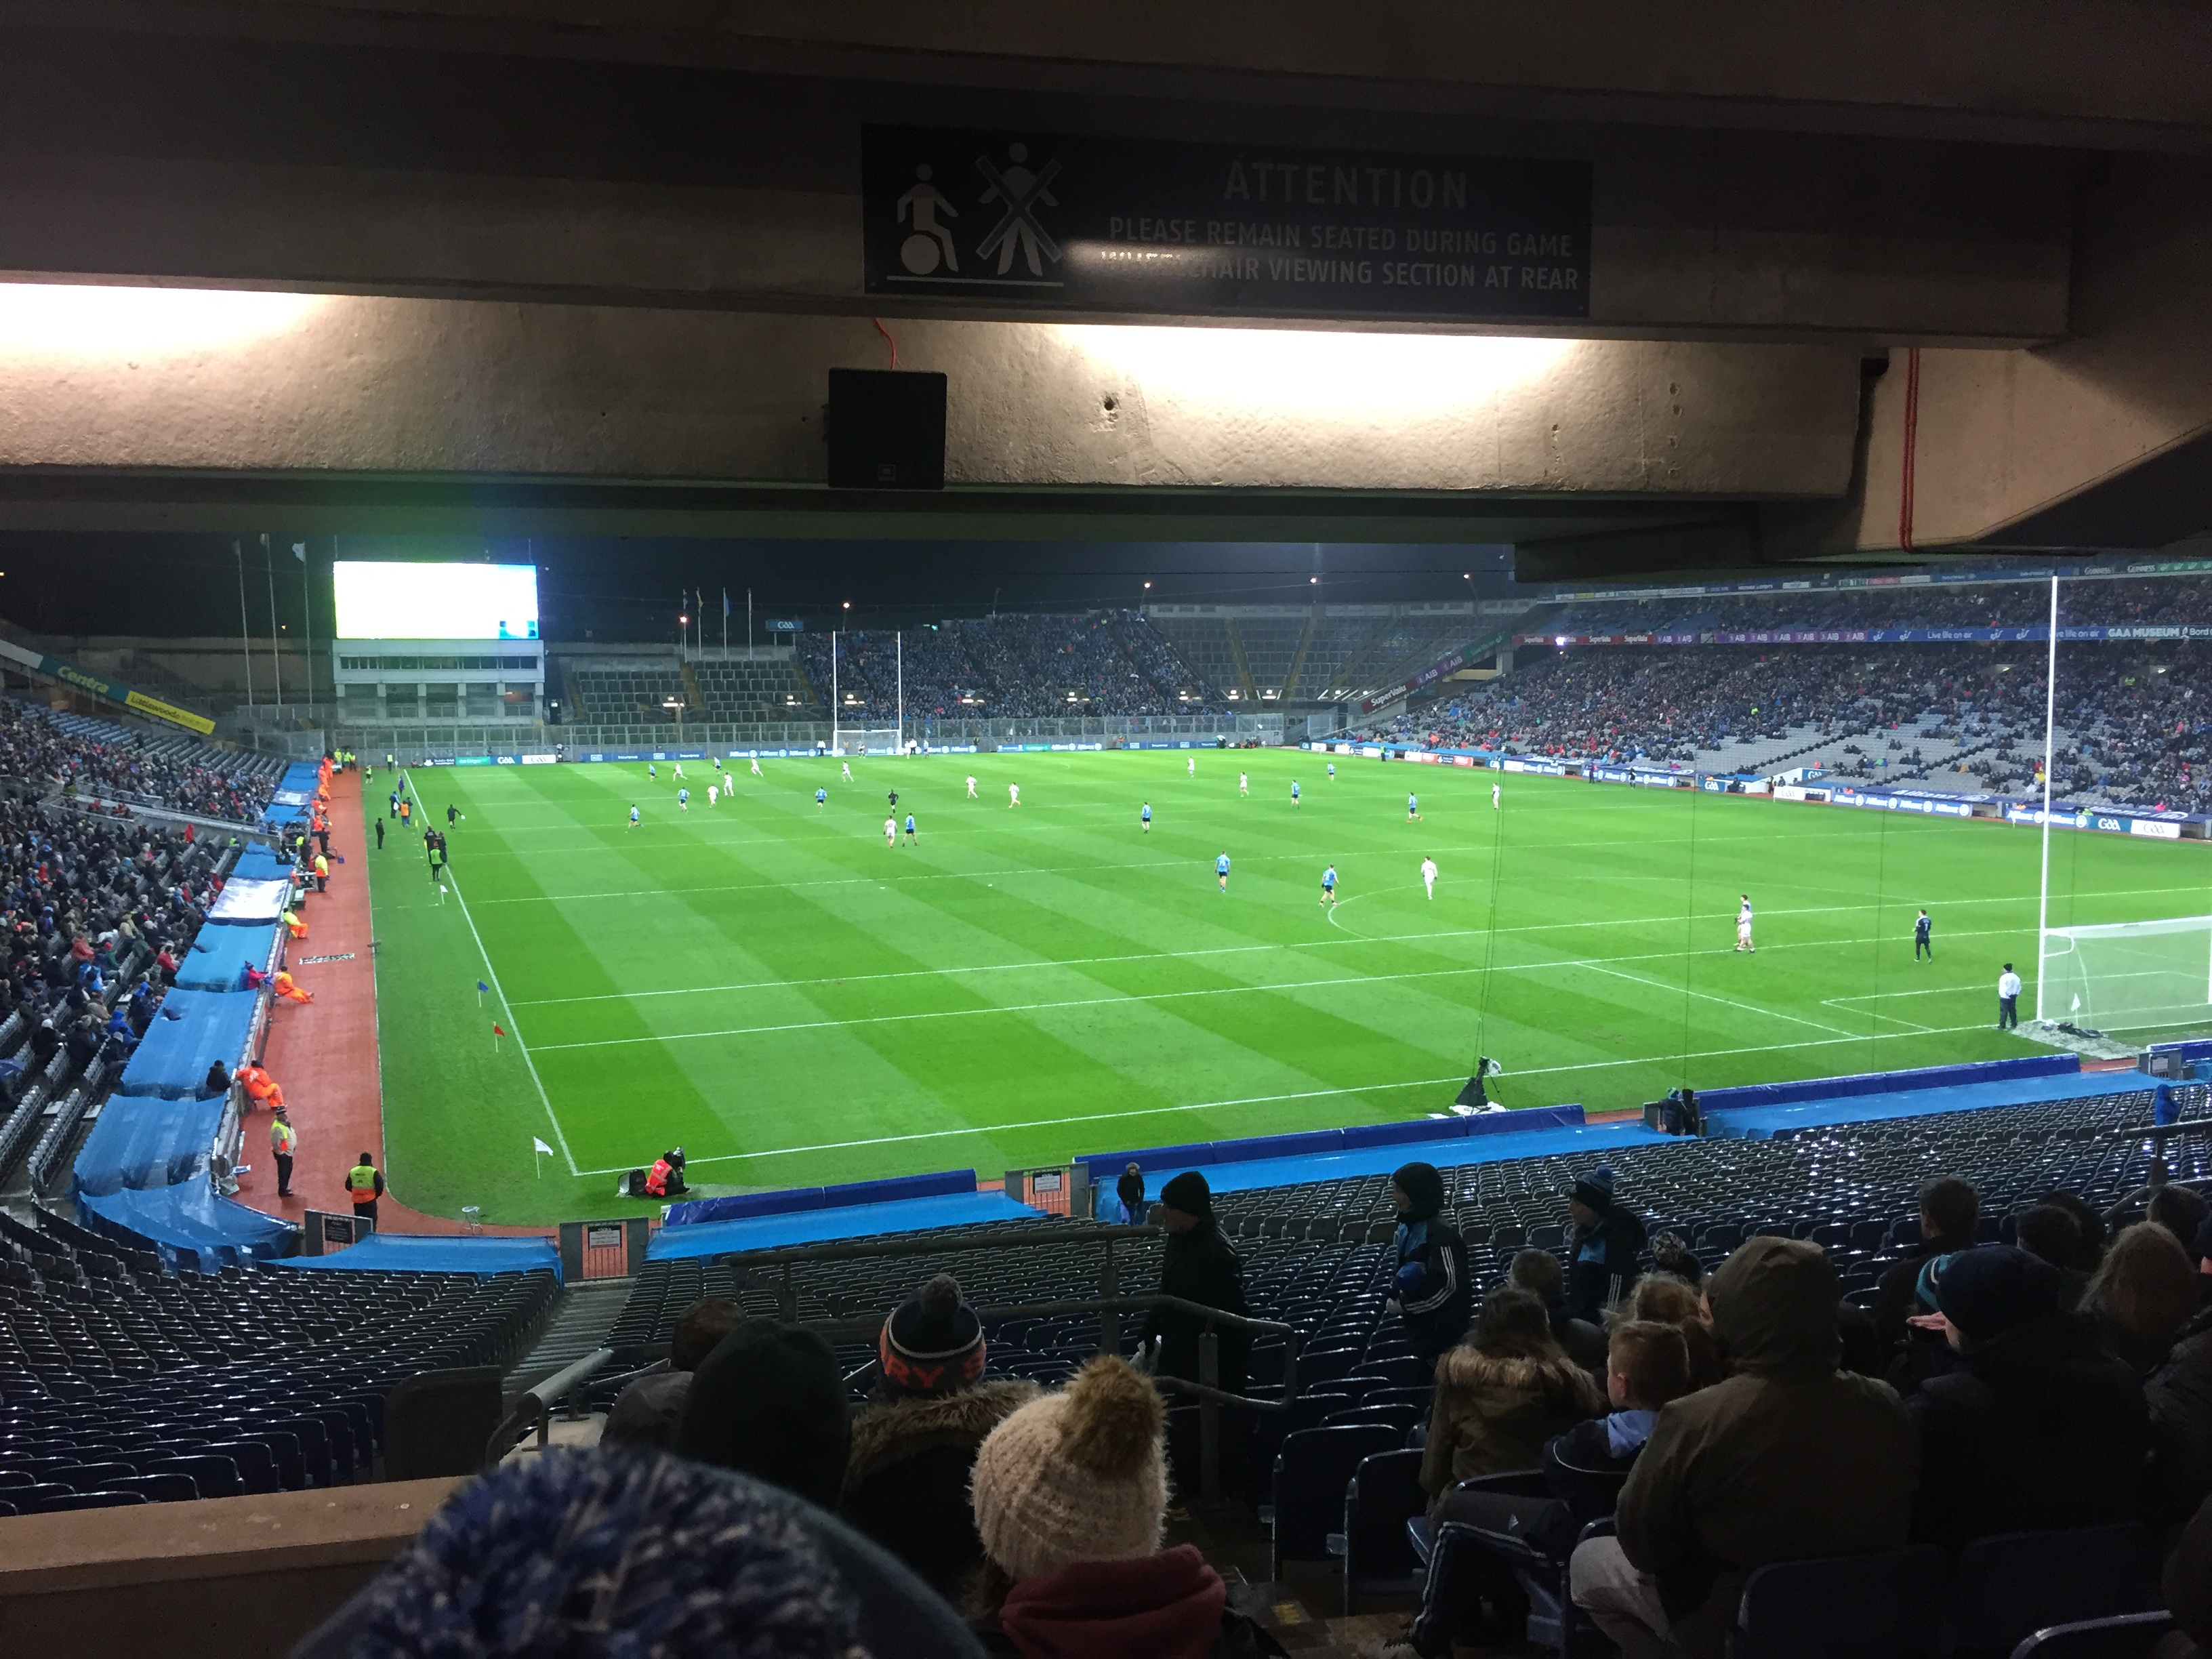 GAA game at Croke Park, Dublin, Ireland